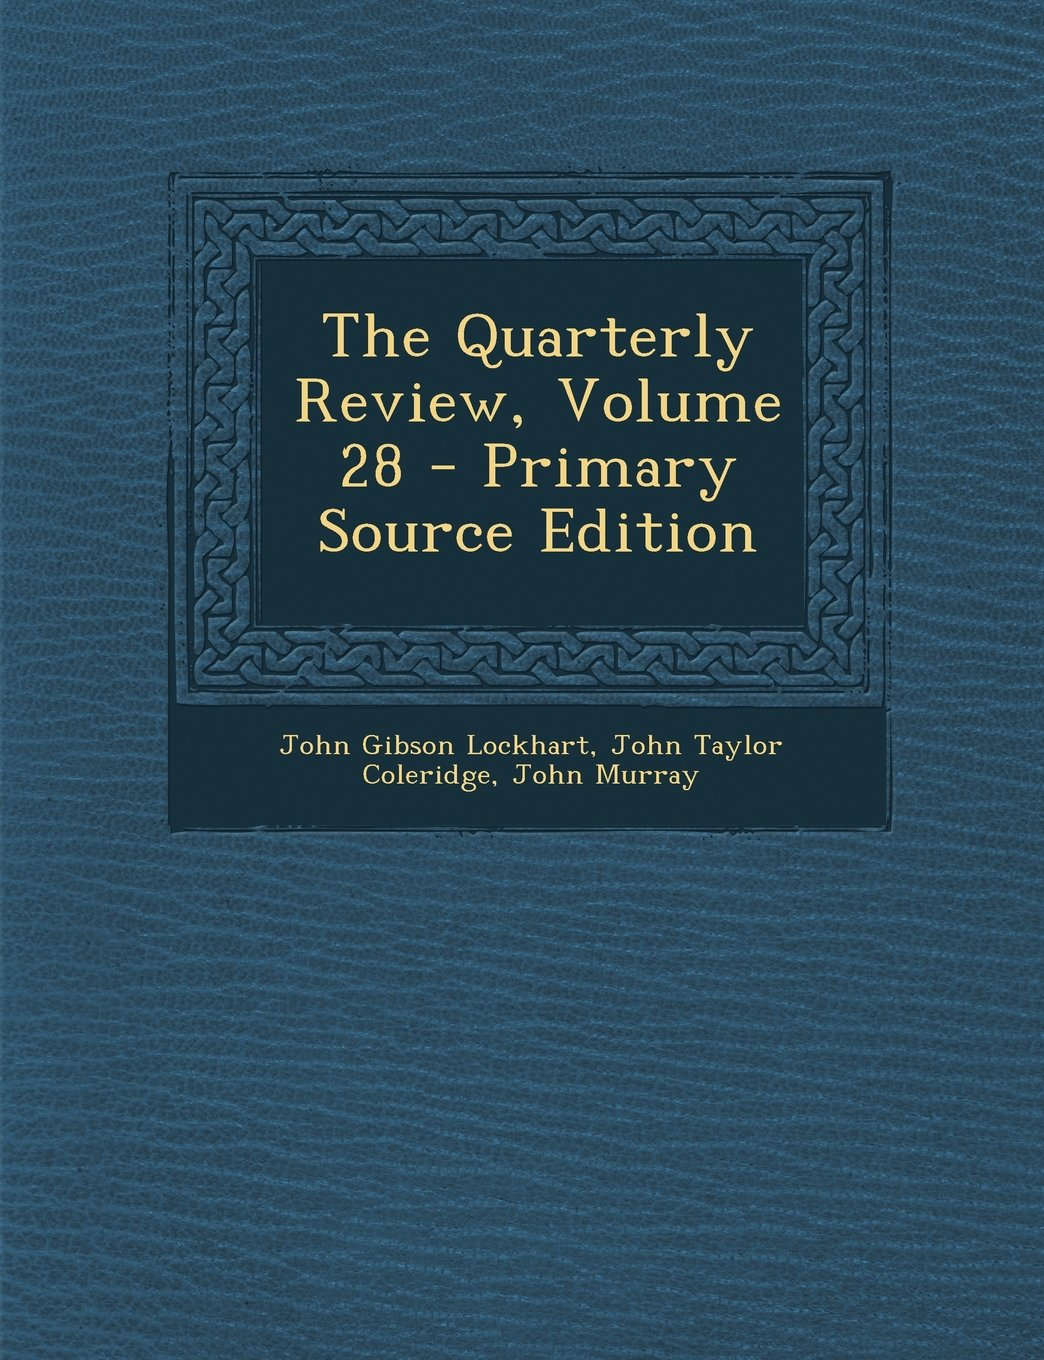 Read Online The Quarterly Review, Volume 28 - Primary Source Edition PDF